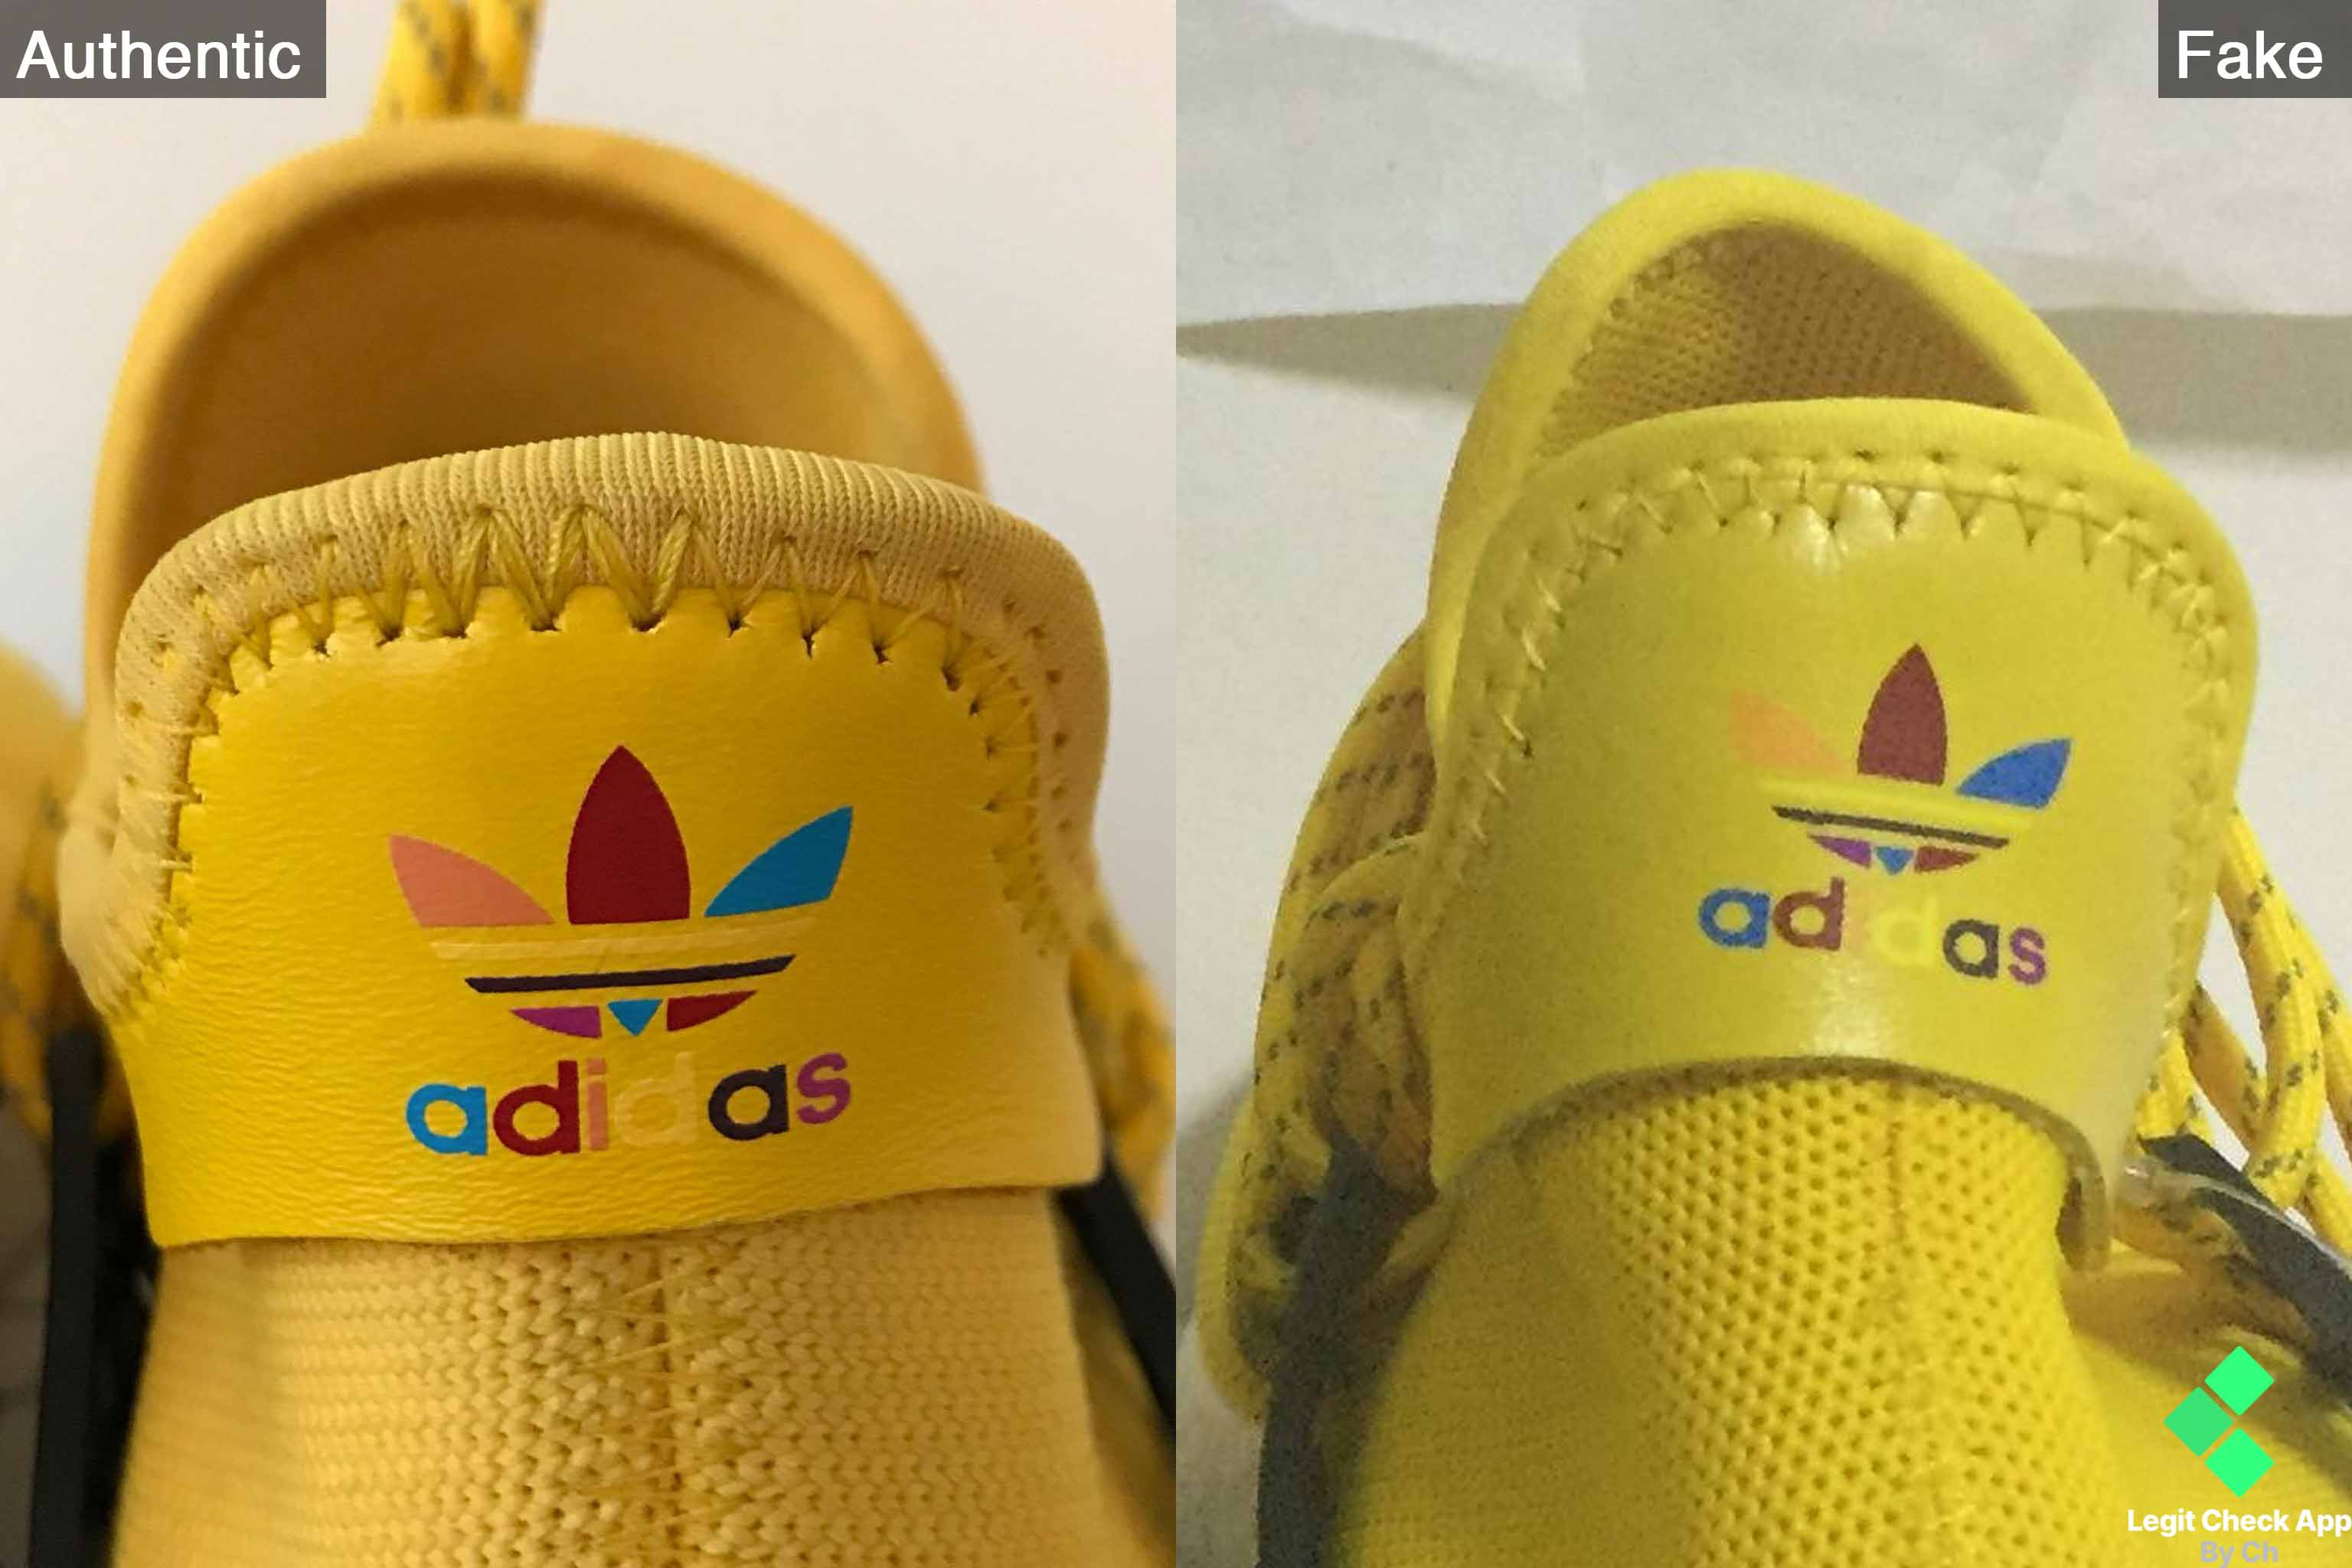 91c02a19830 Logos (Yellow) - Legit Check App By Ch